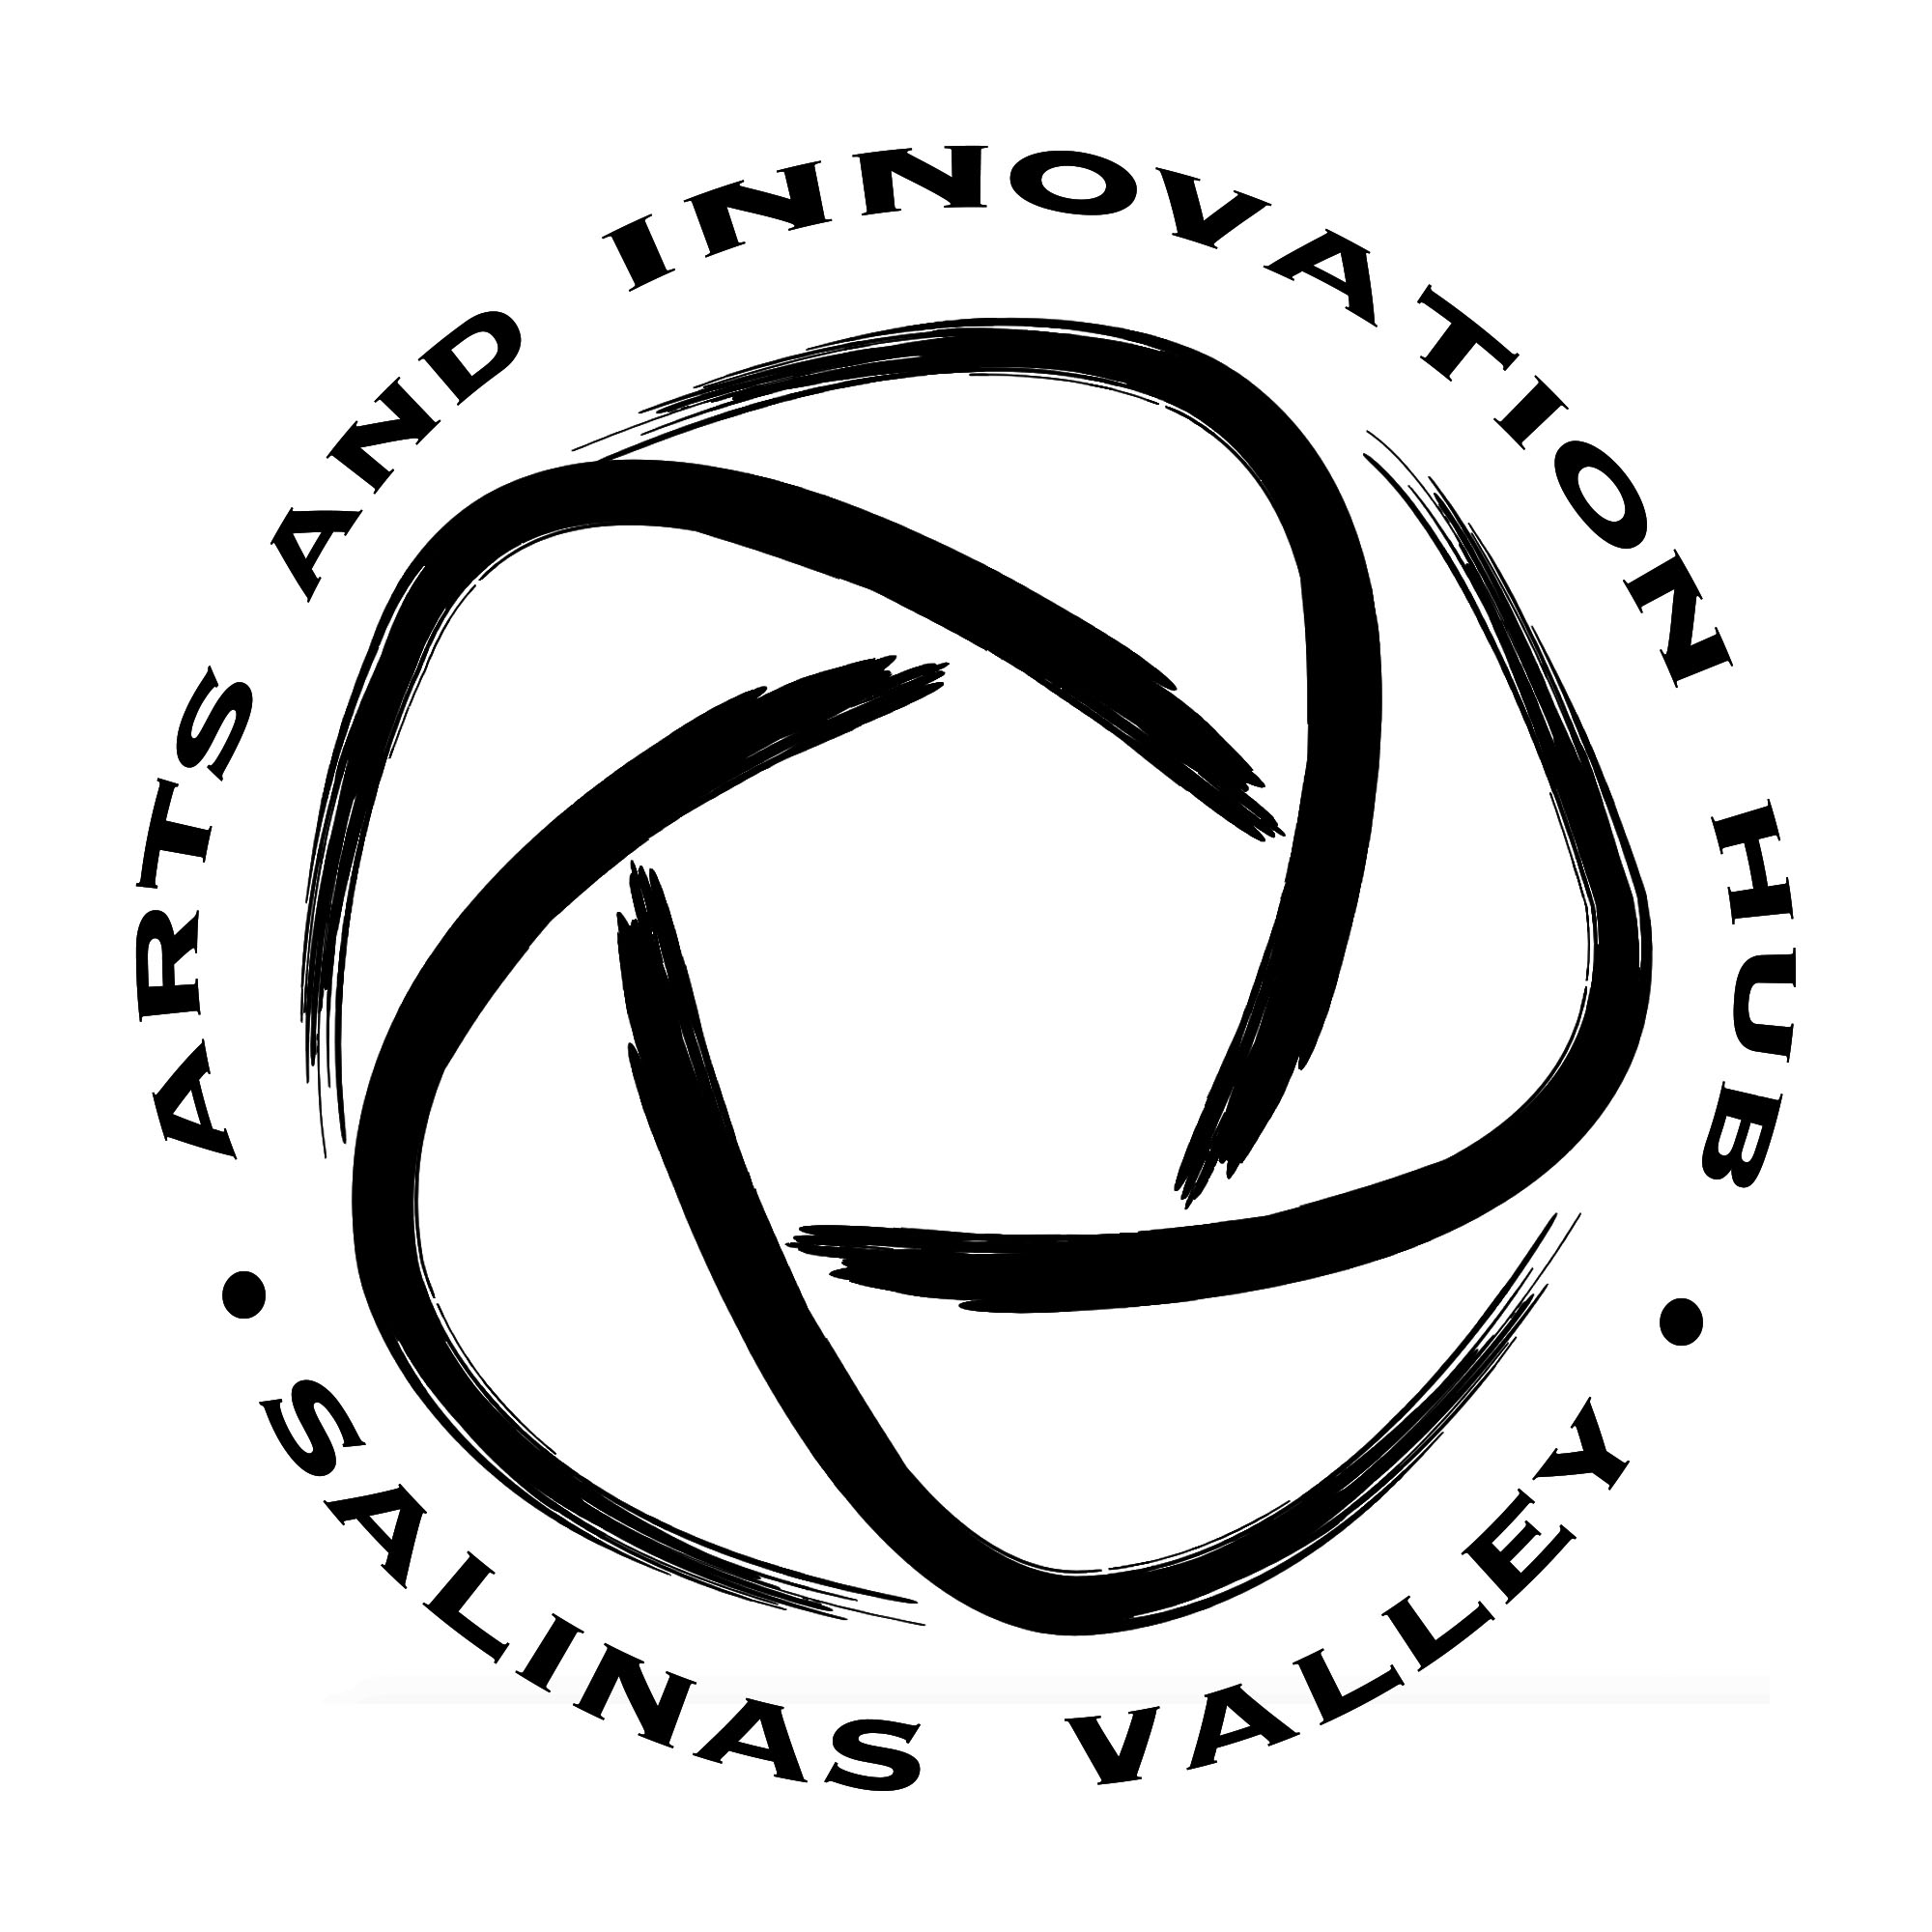 Salinas Valley Arts and Innovation Hub